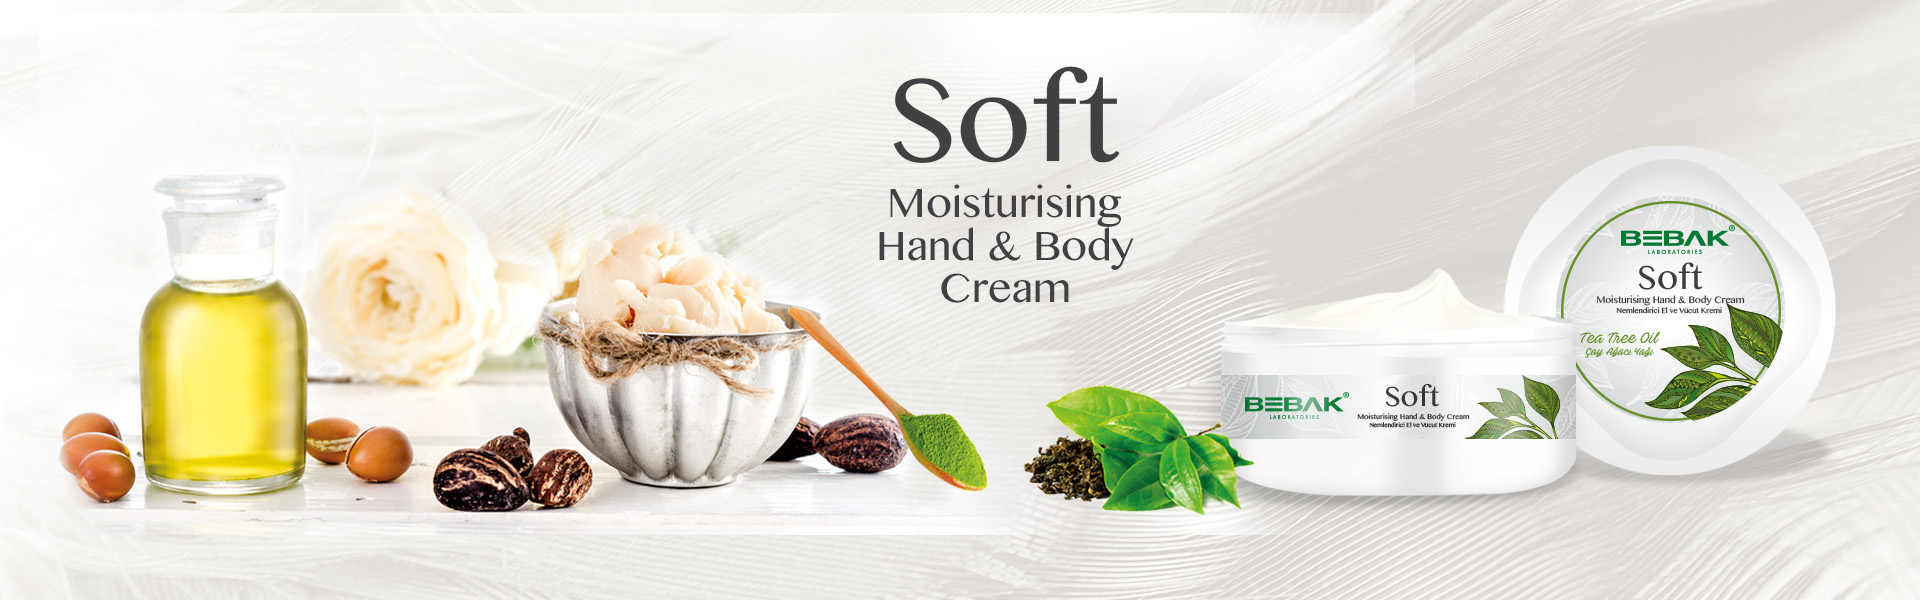 Bebak Soft Body Cream